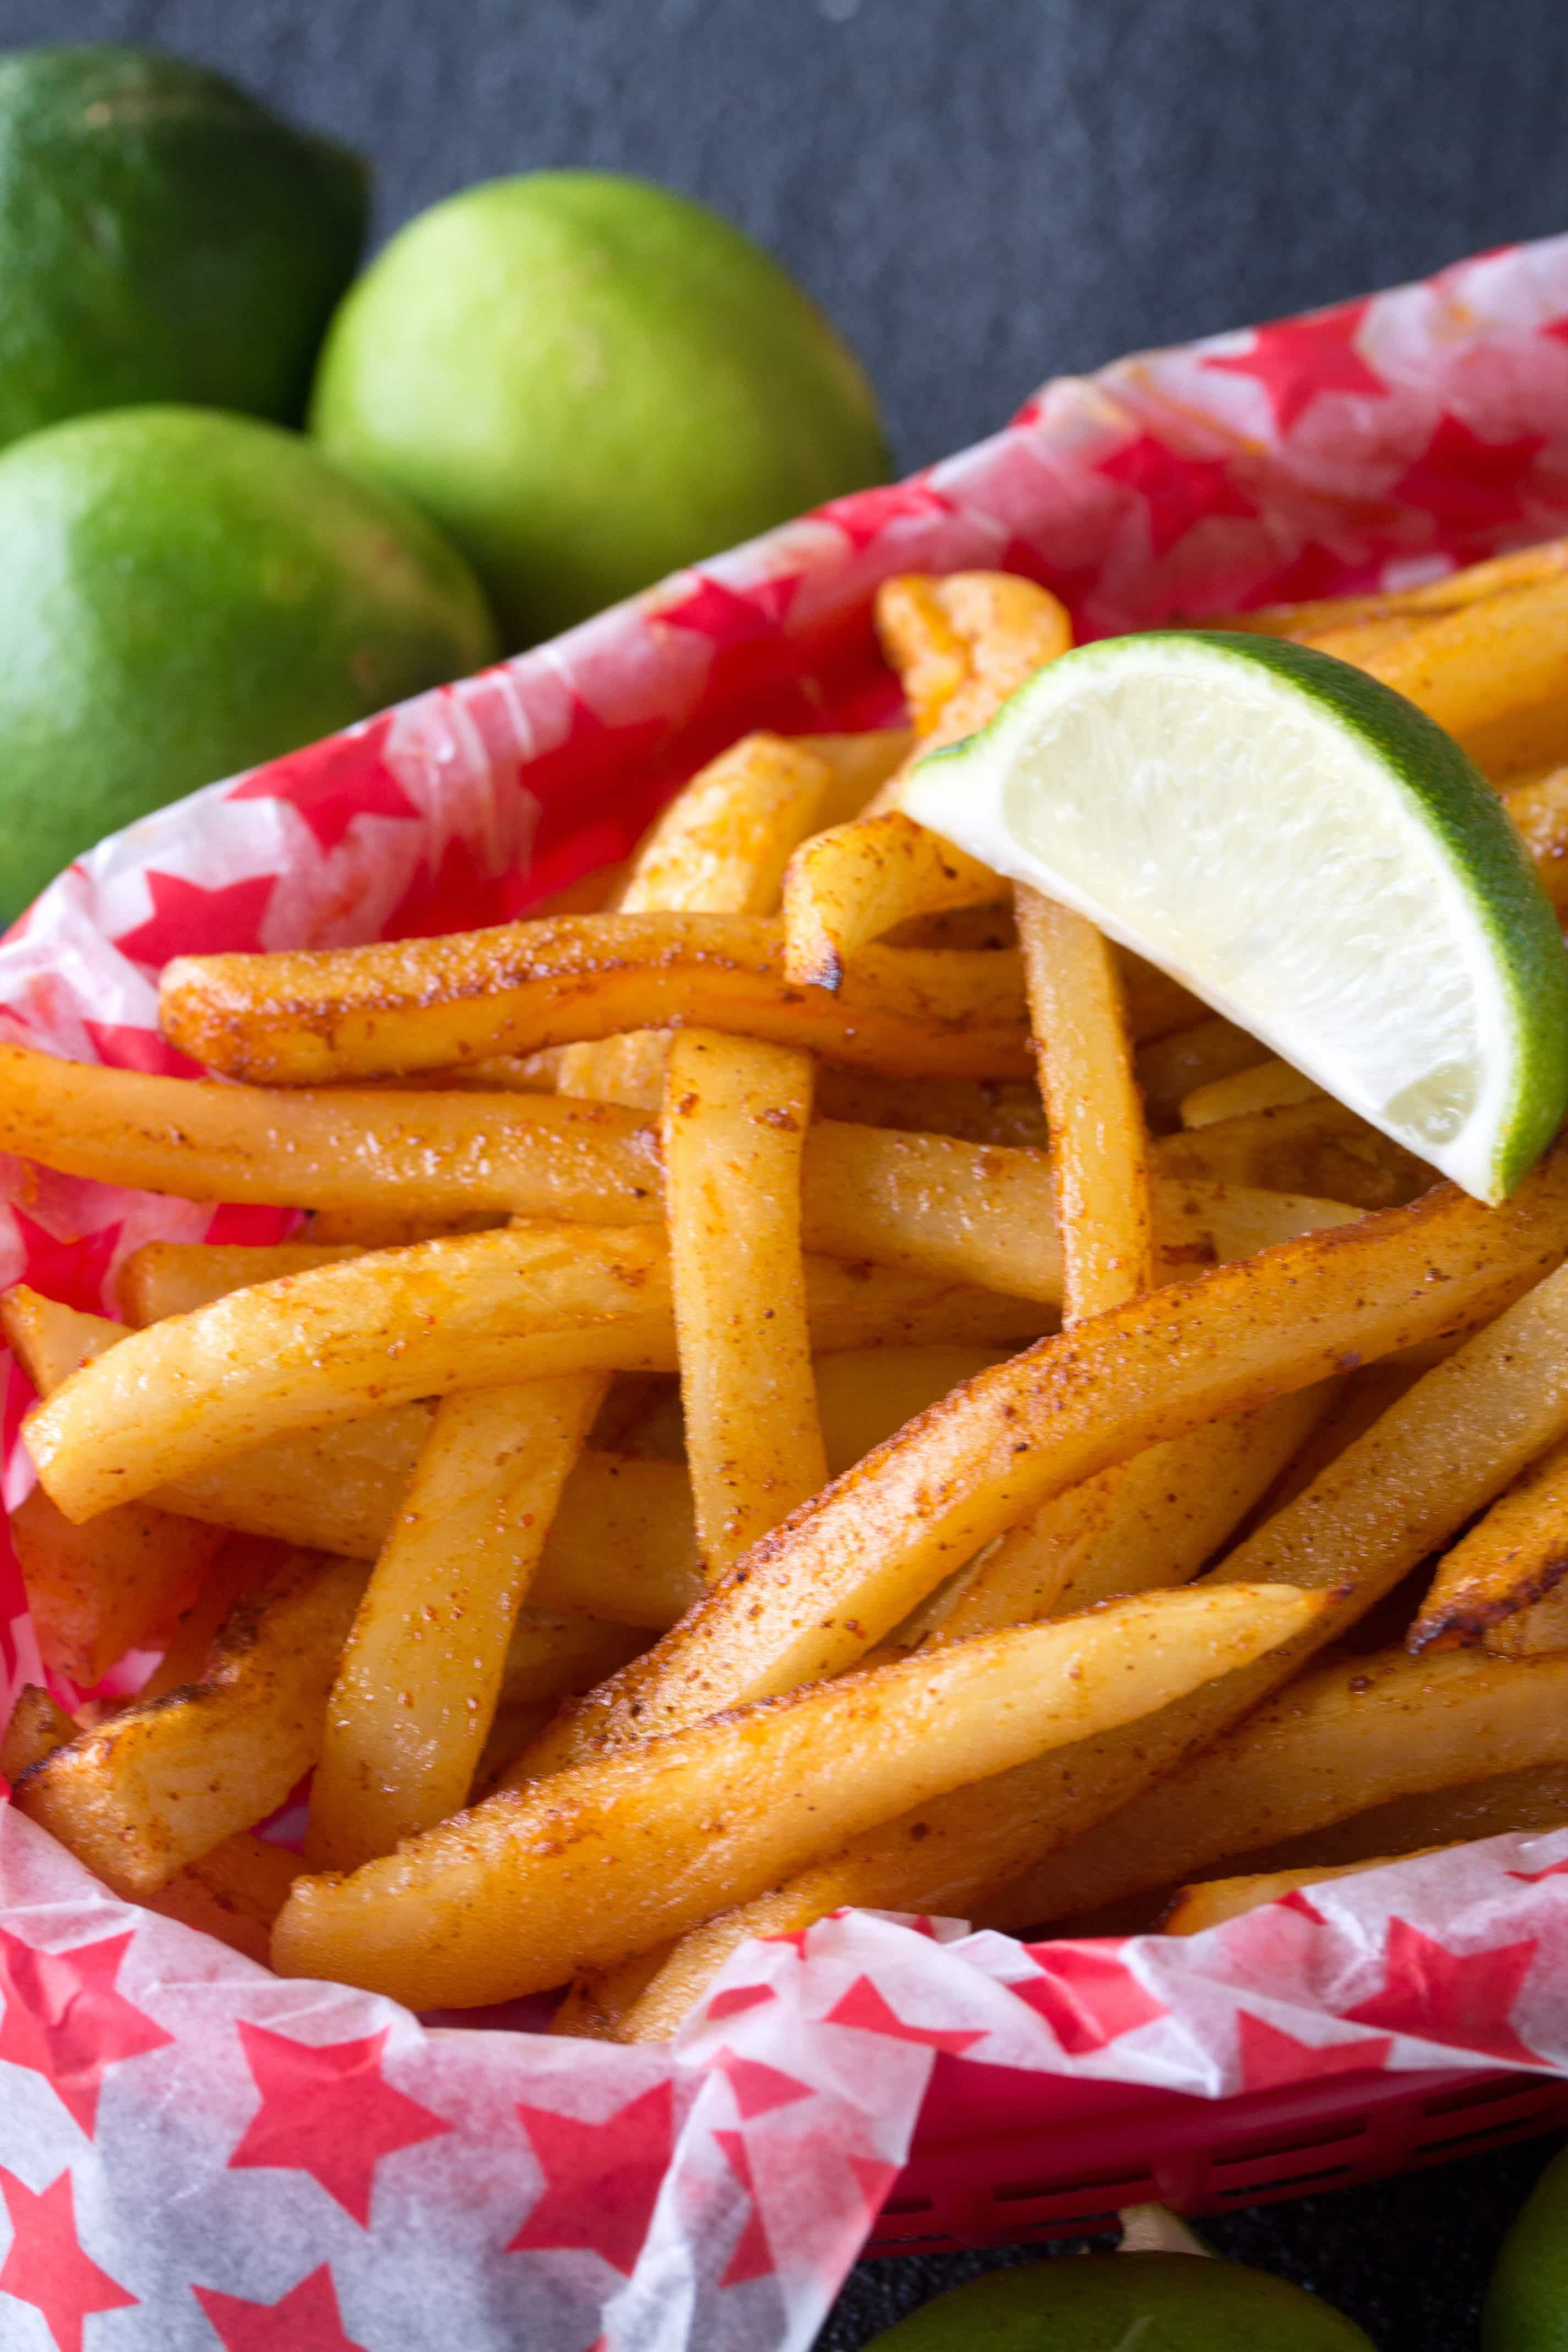 Baked French Fries With A Spicy Chili Lime Coating. These Baked Chili Lime